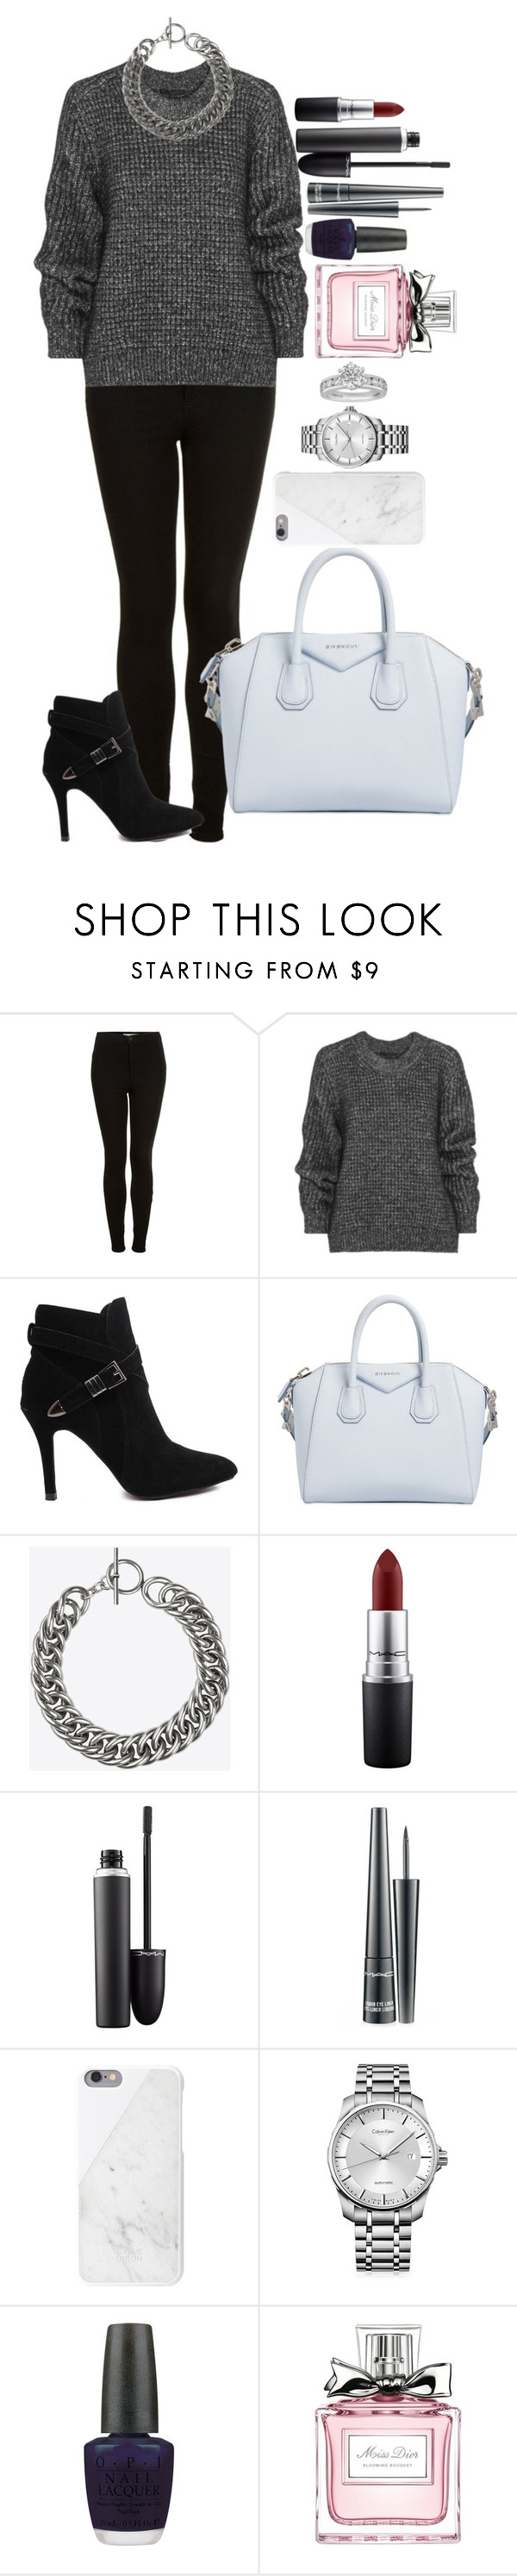 """""""Untitled #1309"""" by fabianarveloc on Polyvore featuring Topshop, Belstaff, Givenchy, Yves Saint Laurent, MAC Cosmetics, Native Union, Calvin Klein, OPI, Christian Dior and Tiffany & Co."""